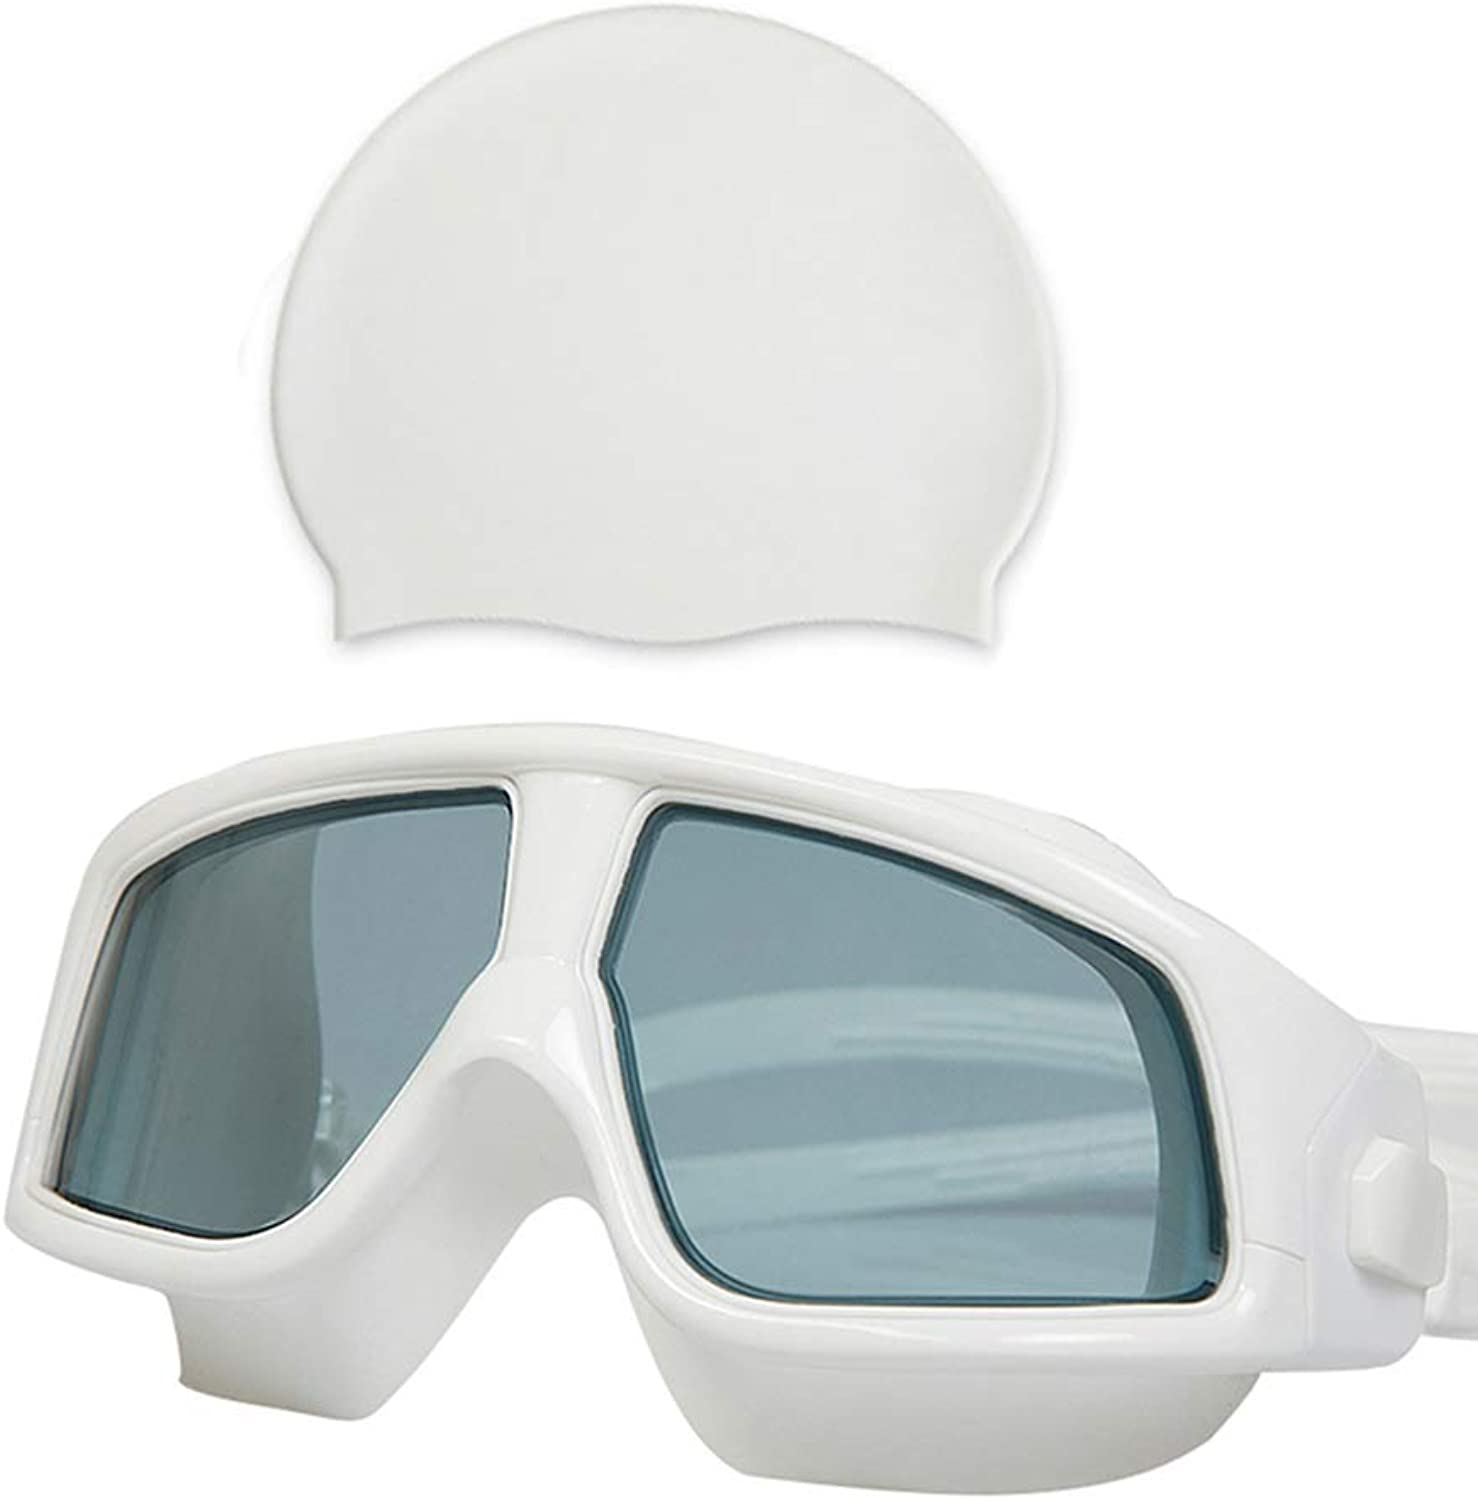 Swimming Goggles for Men and Women Youth Large Frame Waterproof AntiFog HD Goggles (color   White, Size   B)